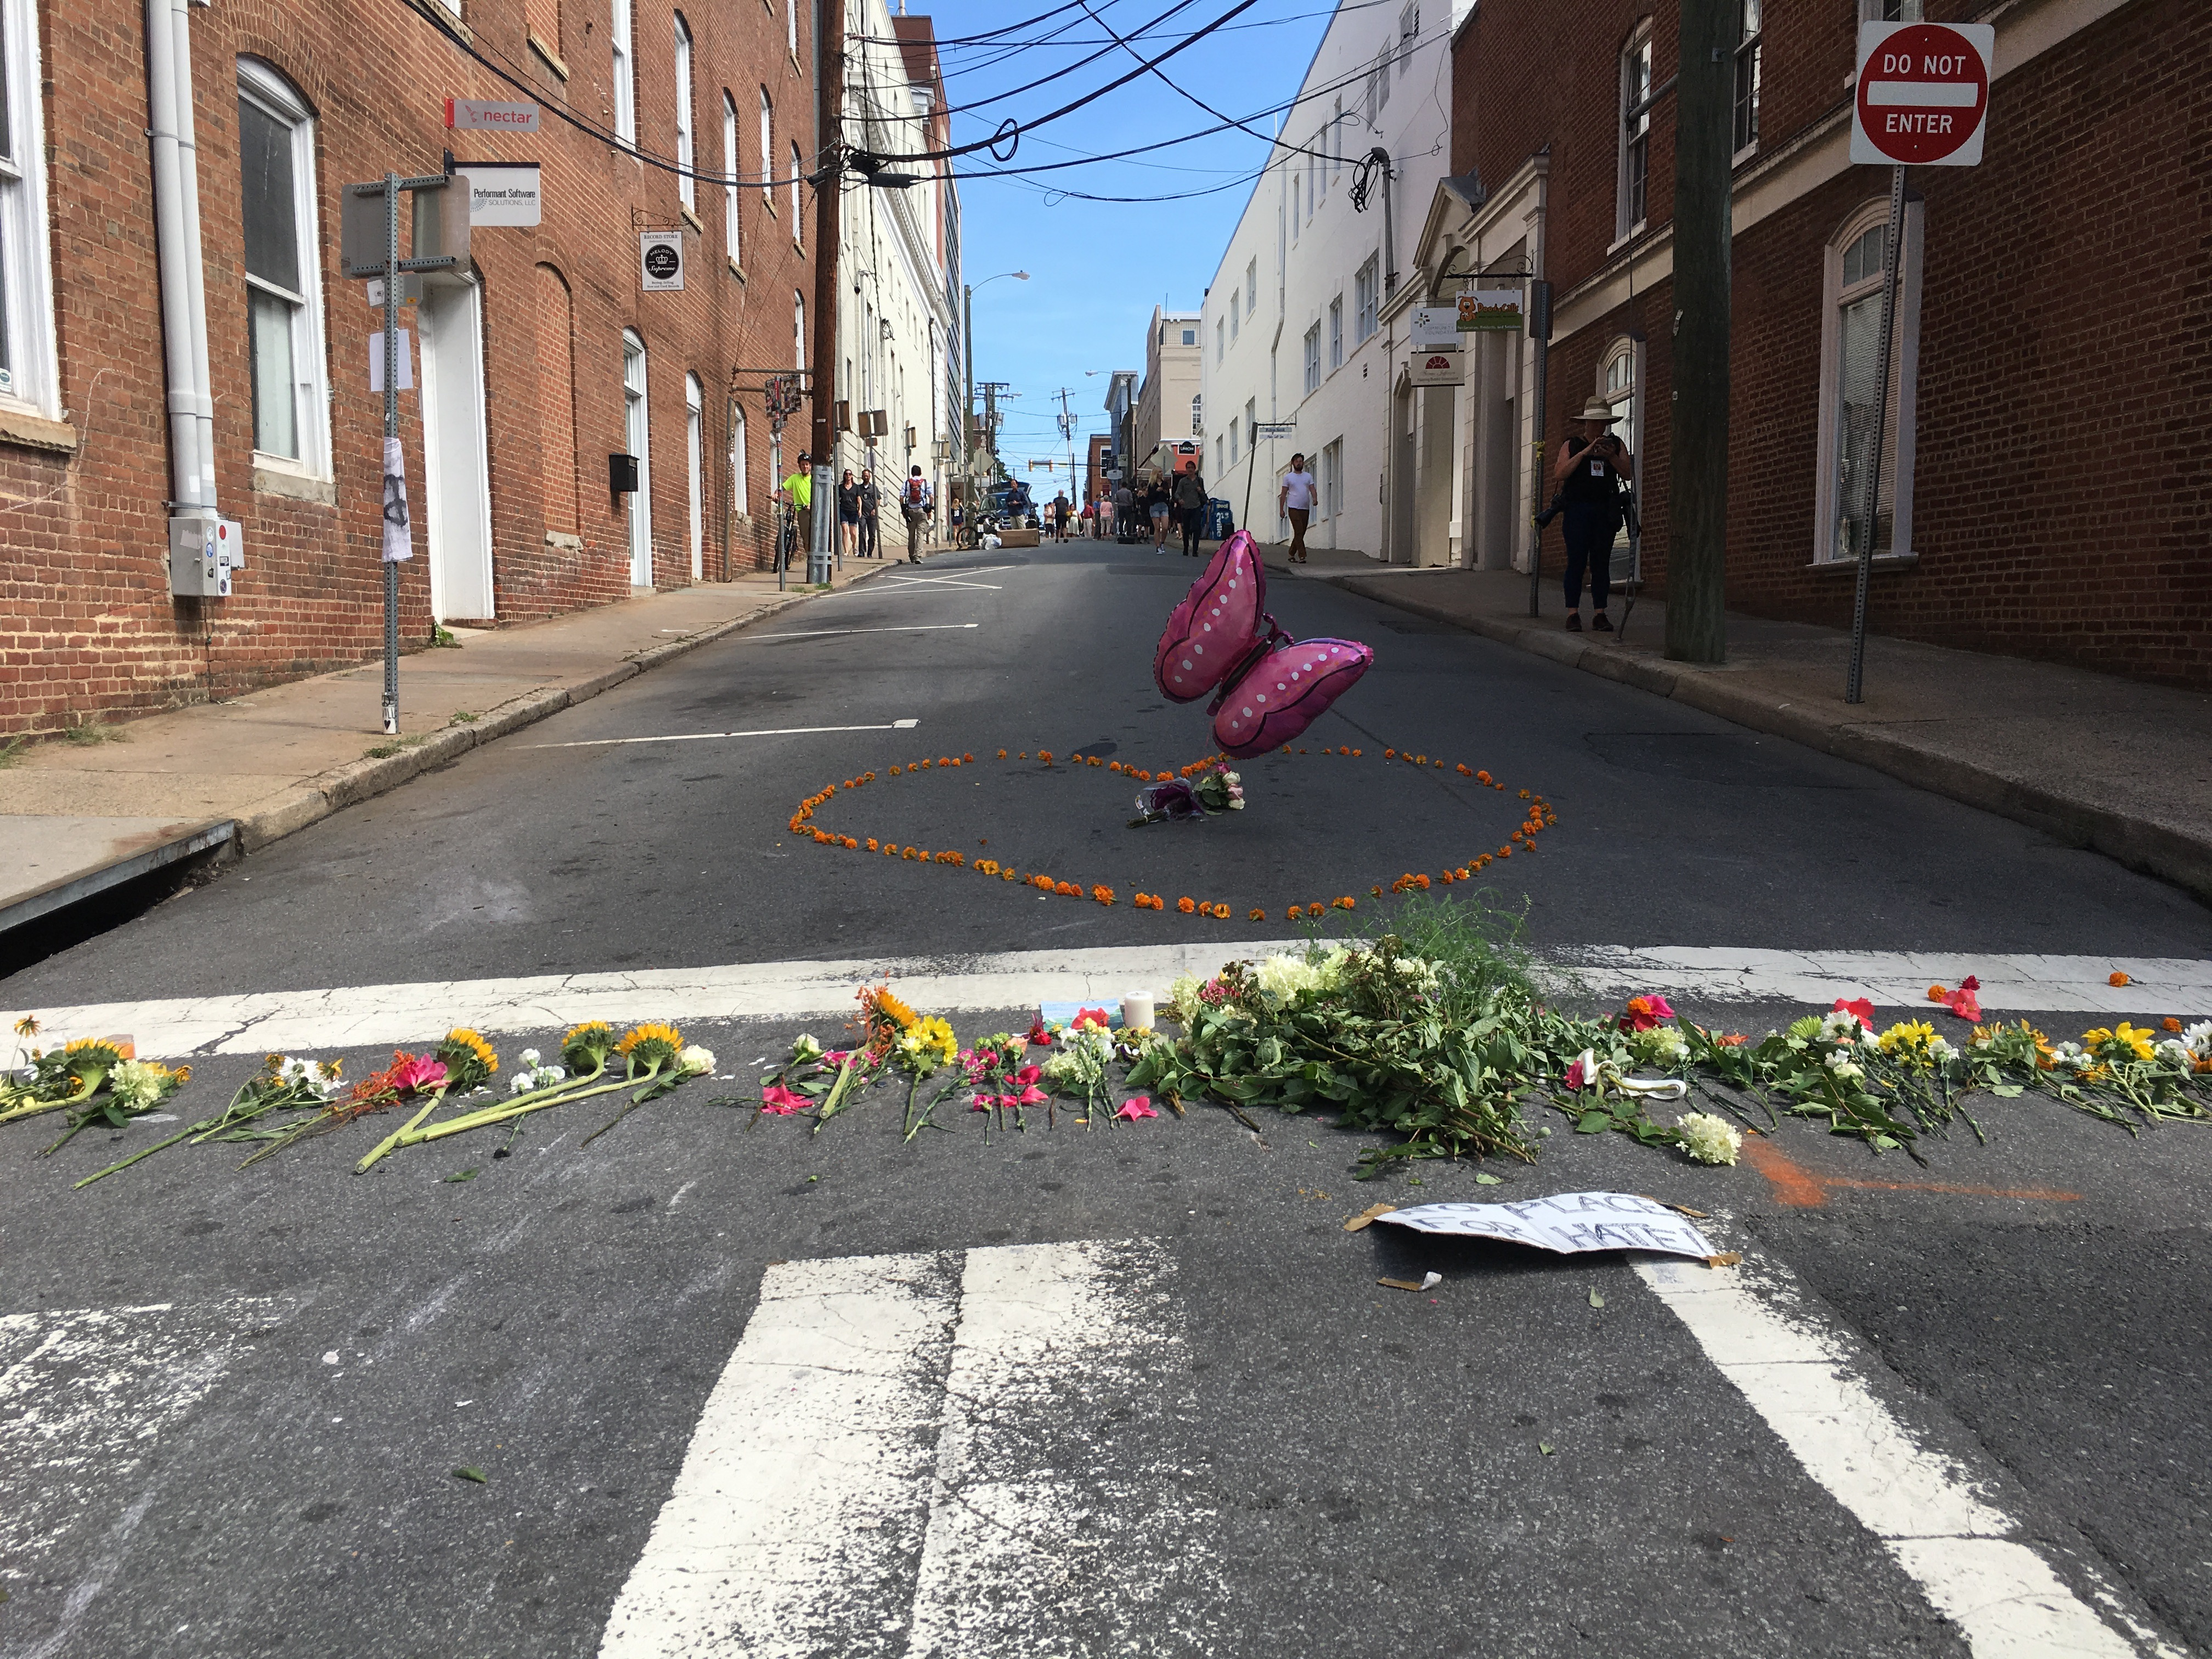 Floral tributes on an empty street